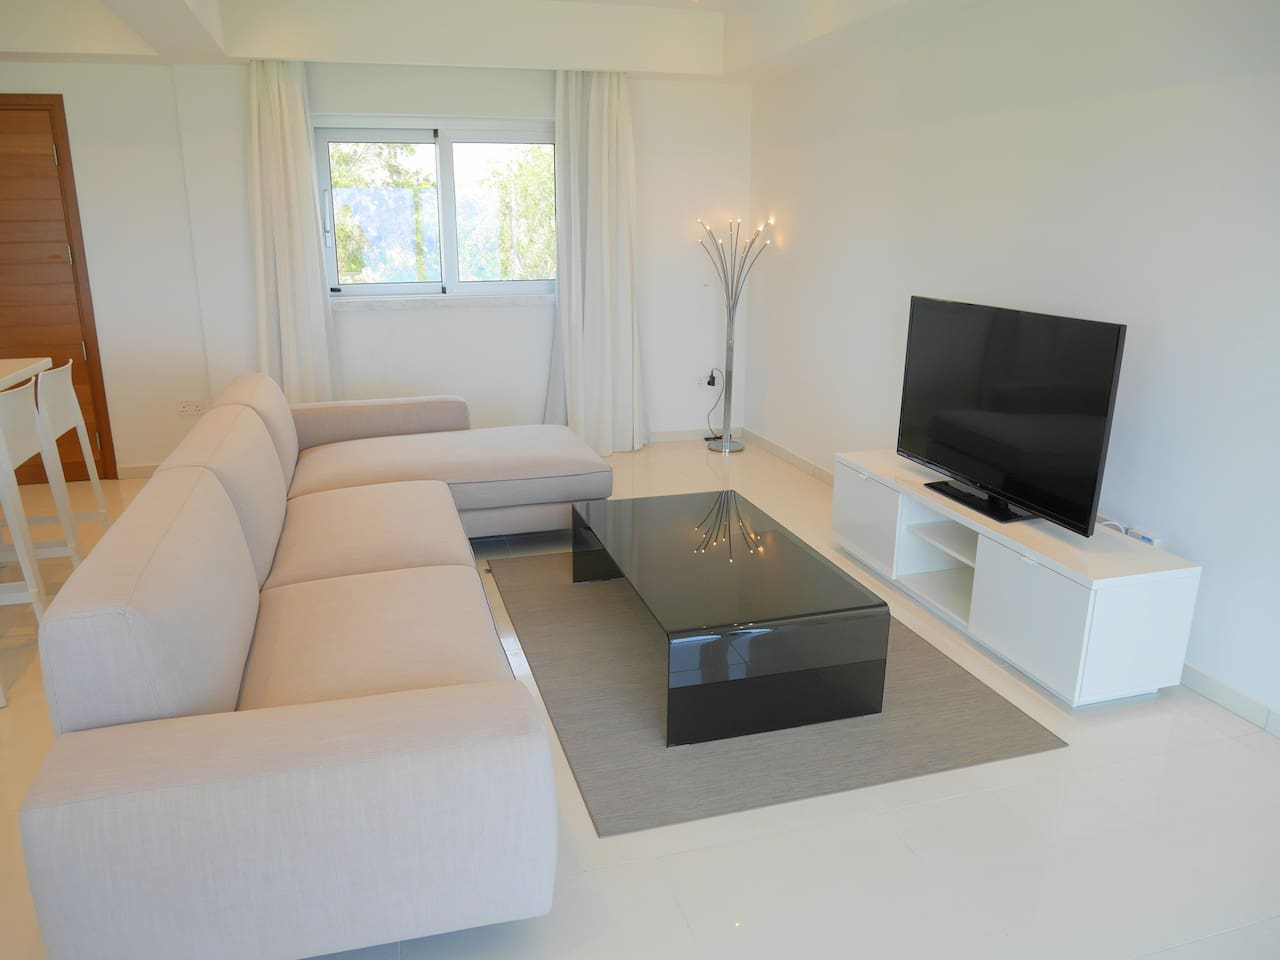 Apartment 2 Bed Luxury Apt with Large Communal Pool B1-101 photo 18702450